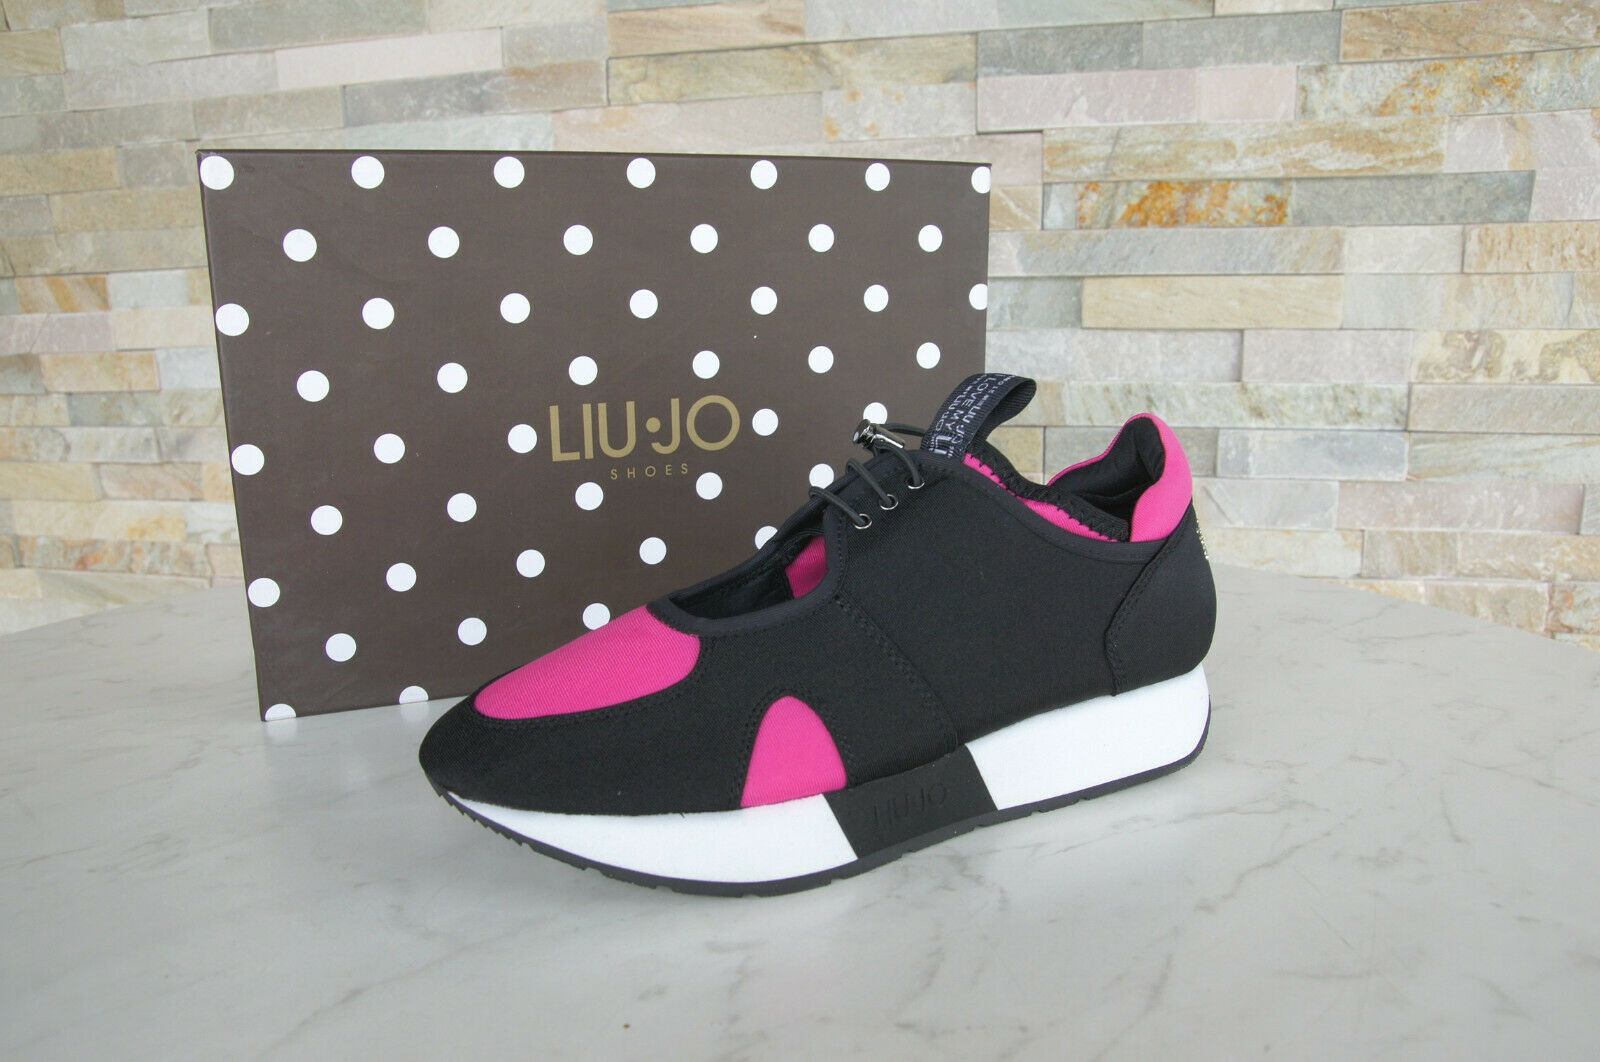 Liu Jo Size 37 Sneakers Low shoes shoes shoes Slip on shoes May Black Pink New Ehemuvp bdce25